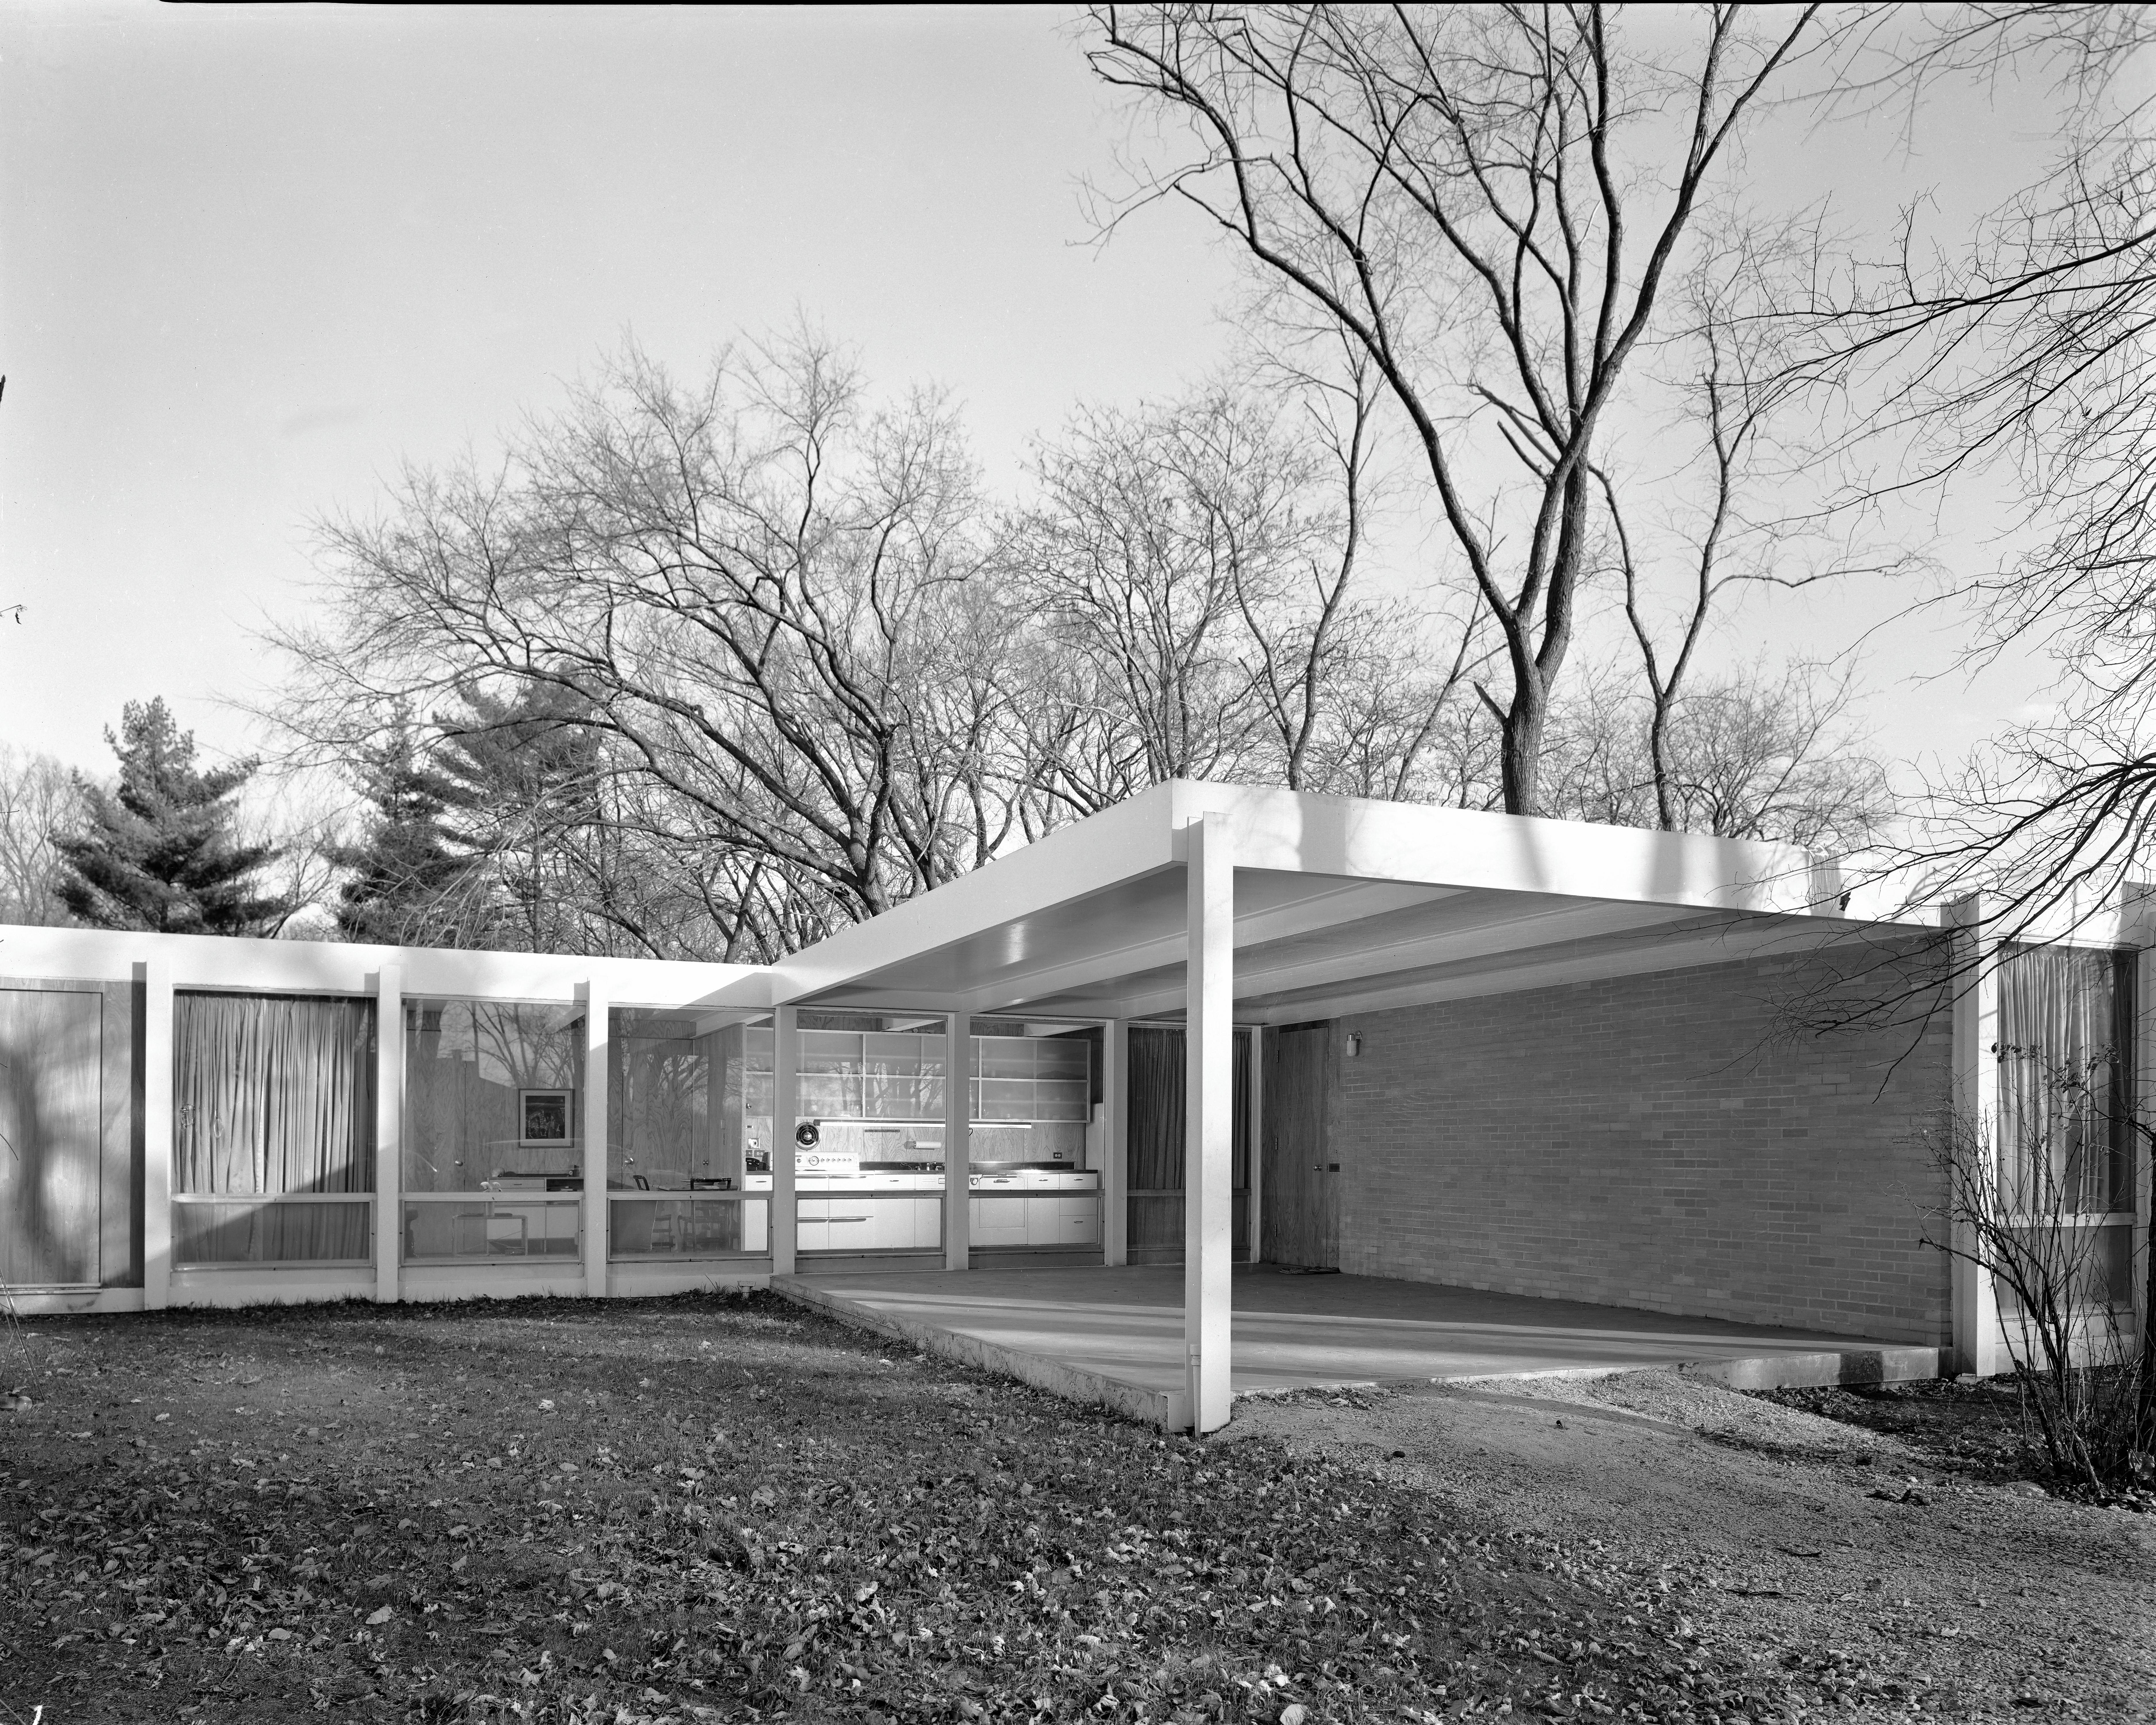 Photo from 1952 showing the exterior of the Robert H. McCormick, Jr. house, designed by Ludwig Mies van der Rohe and originally located at 299 Prospect Ave., Elmhurst.